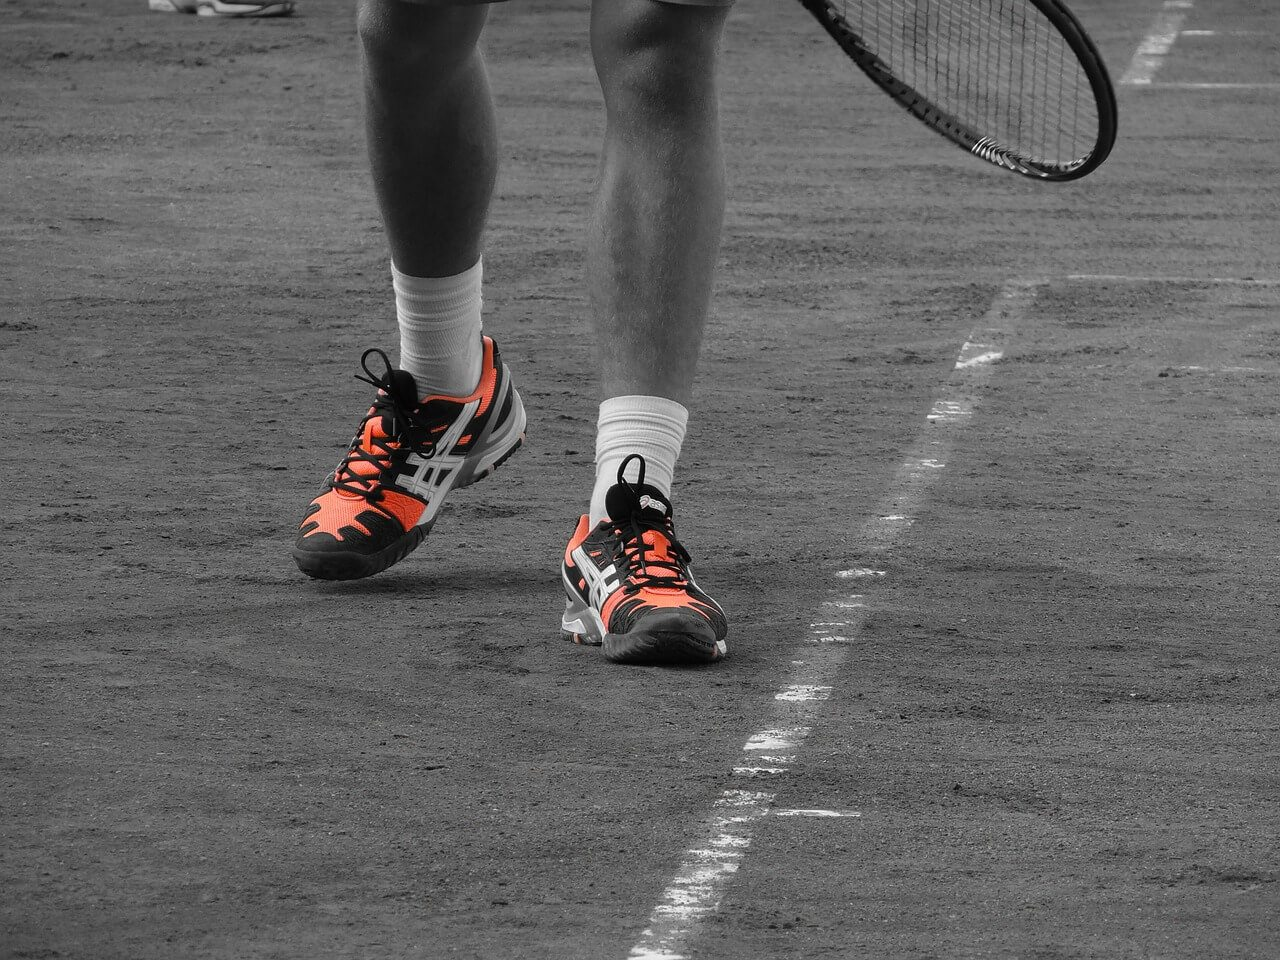 Pro Tennis Player Sues for Injuries in Slip-and-Fall